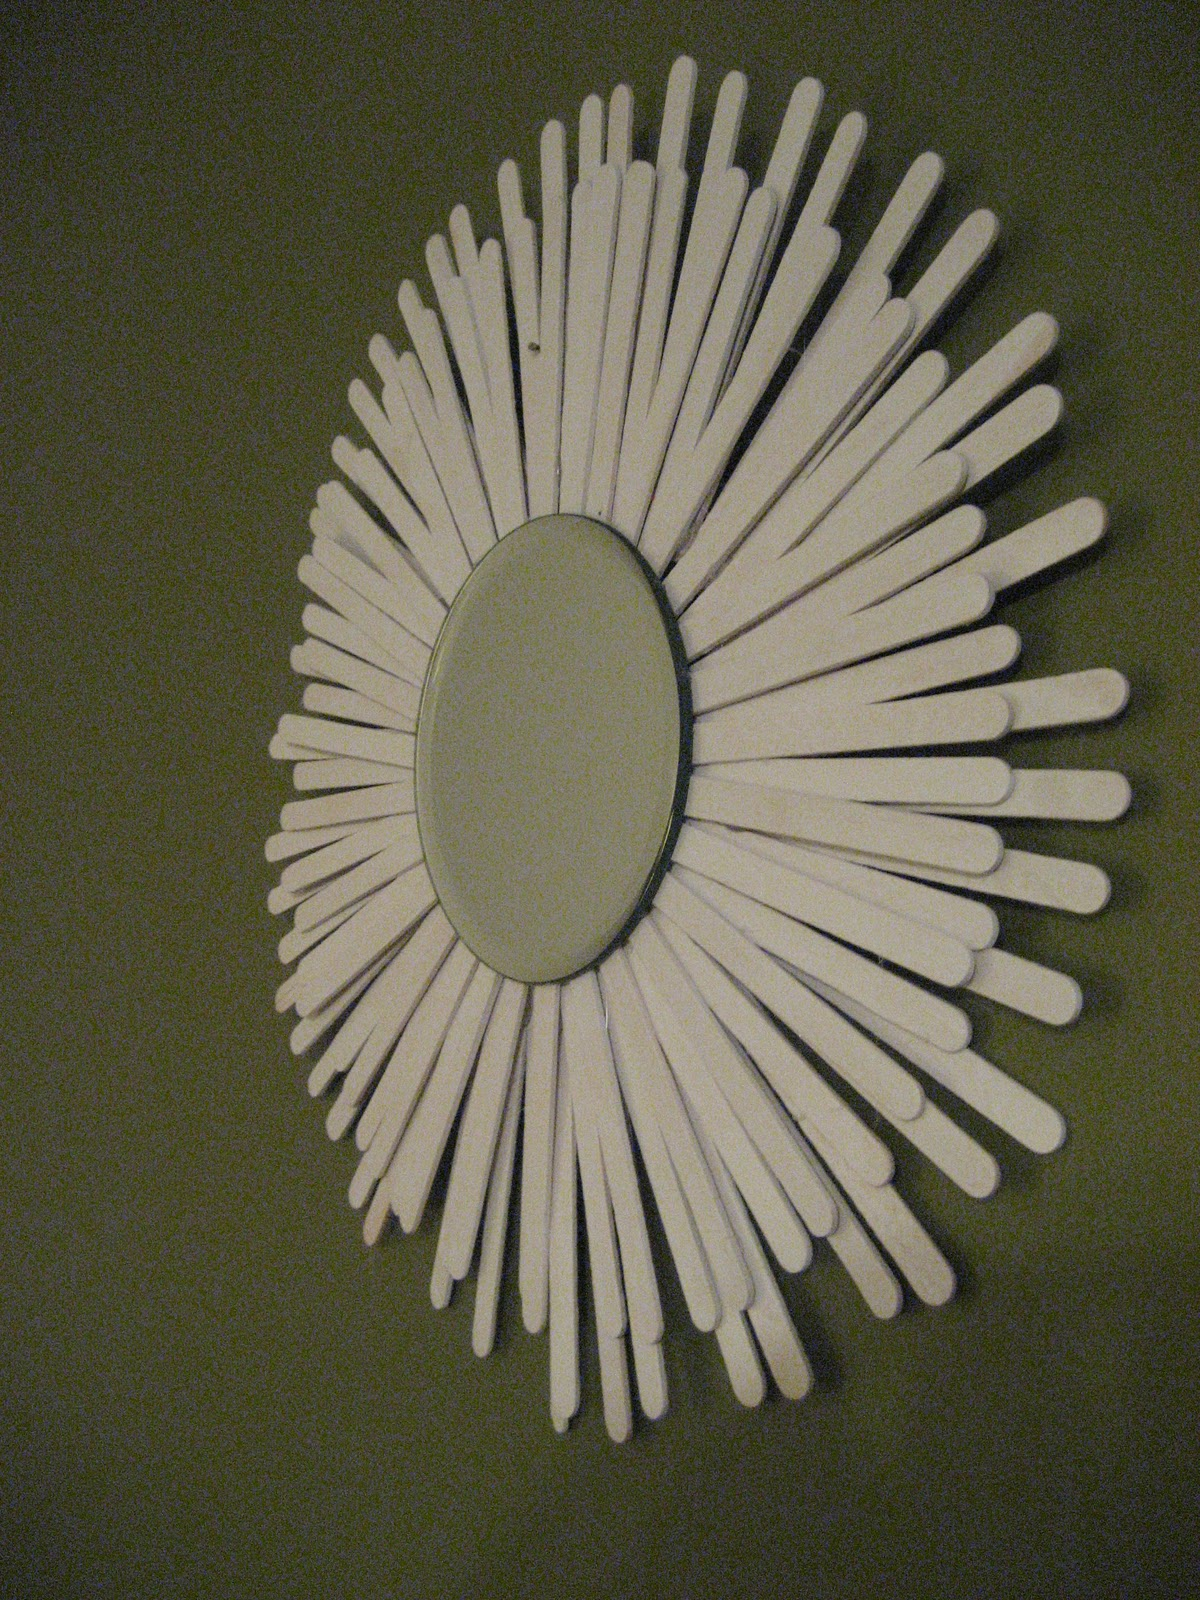 Make this super stylish starburst mirror that will dress up any room in your home